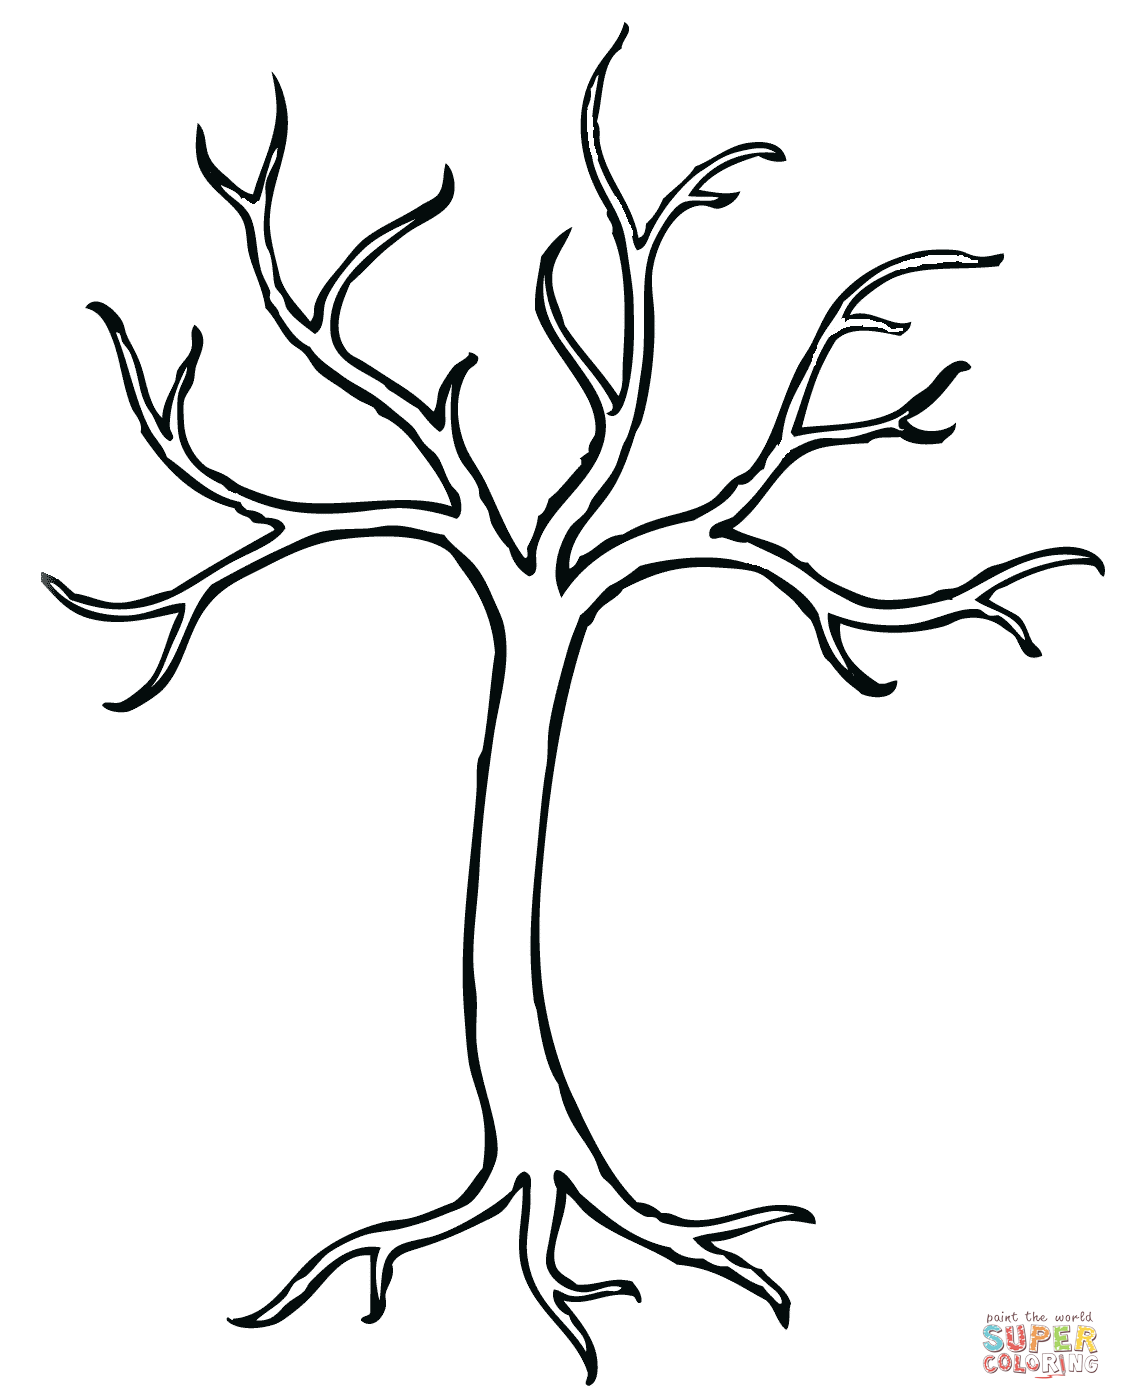 Bare Tree Coloring Page From Trees Leaves Category Select From 27278 Printable Crafts Of Cartoons Nature Animals Tree Coloring Page Bare Tree Tree Crafts